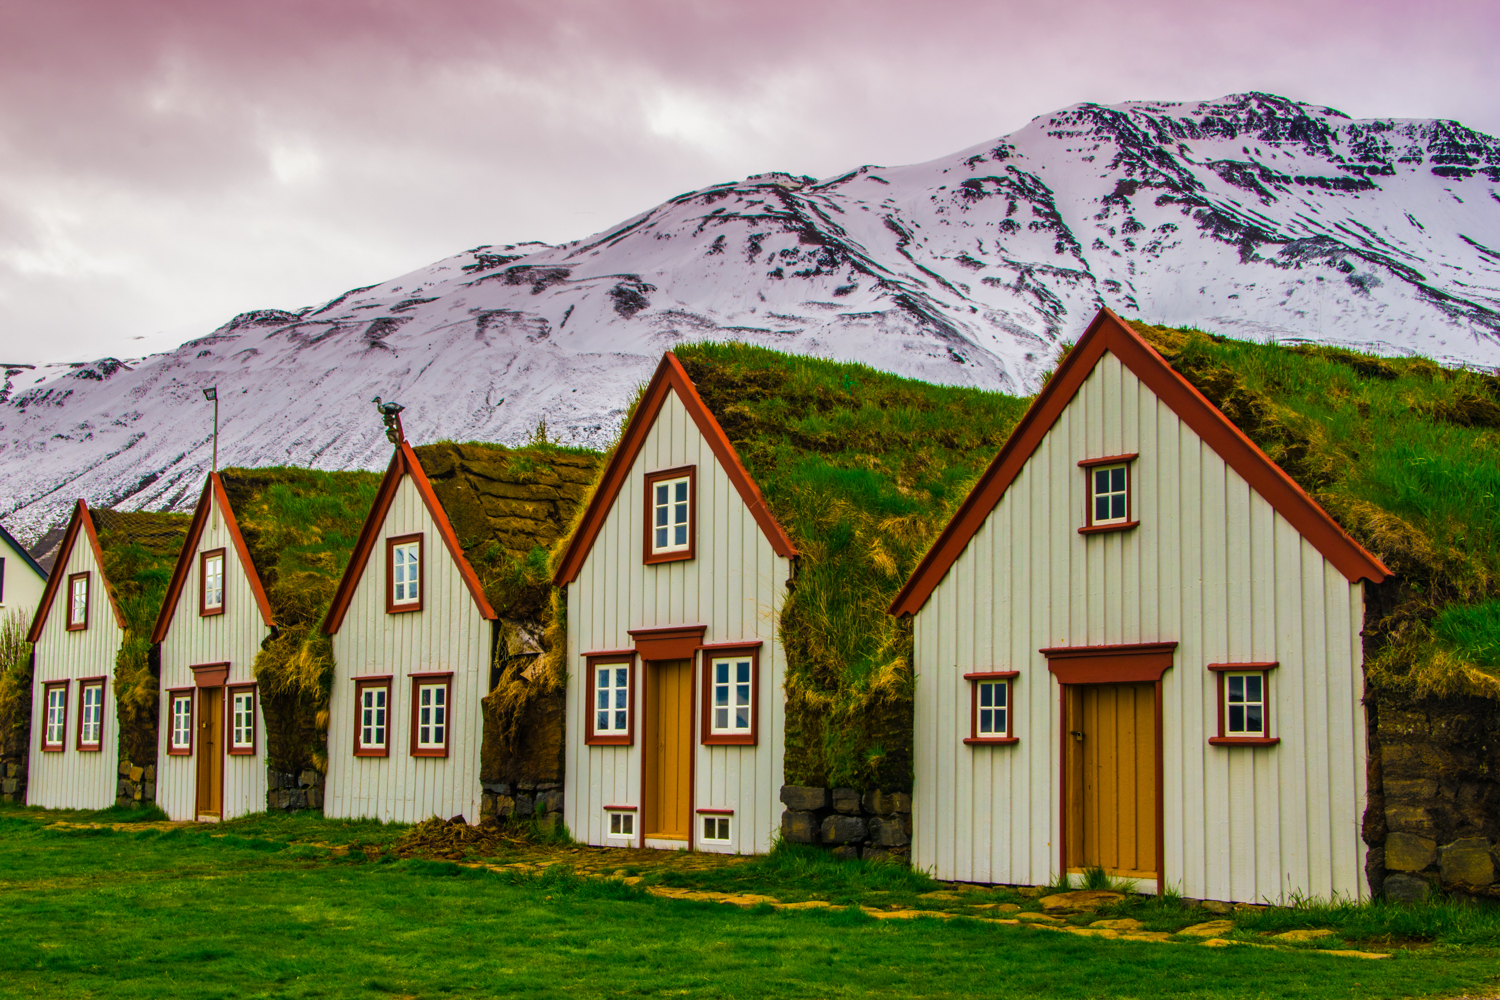 Houses by the side of the road in Iceland